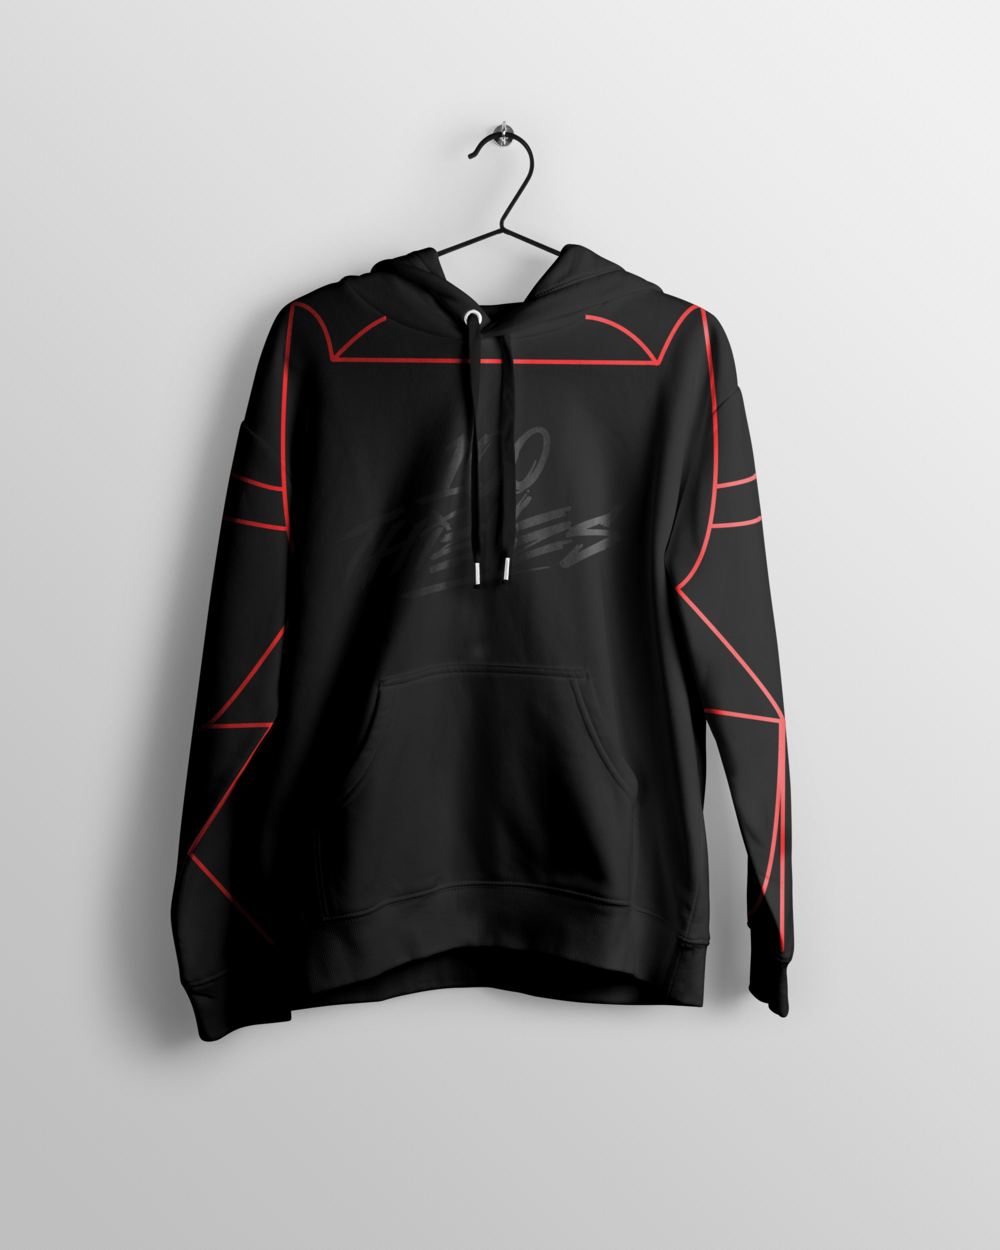 Hoodie_front1.png